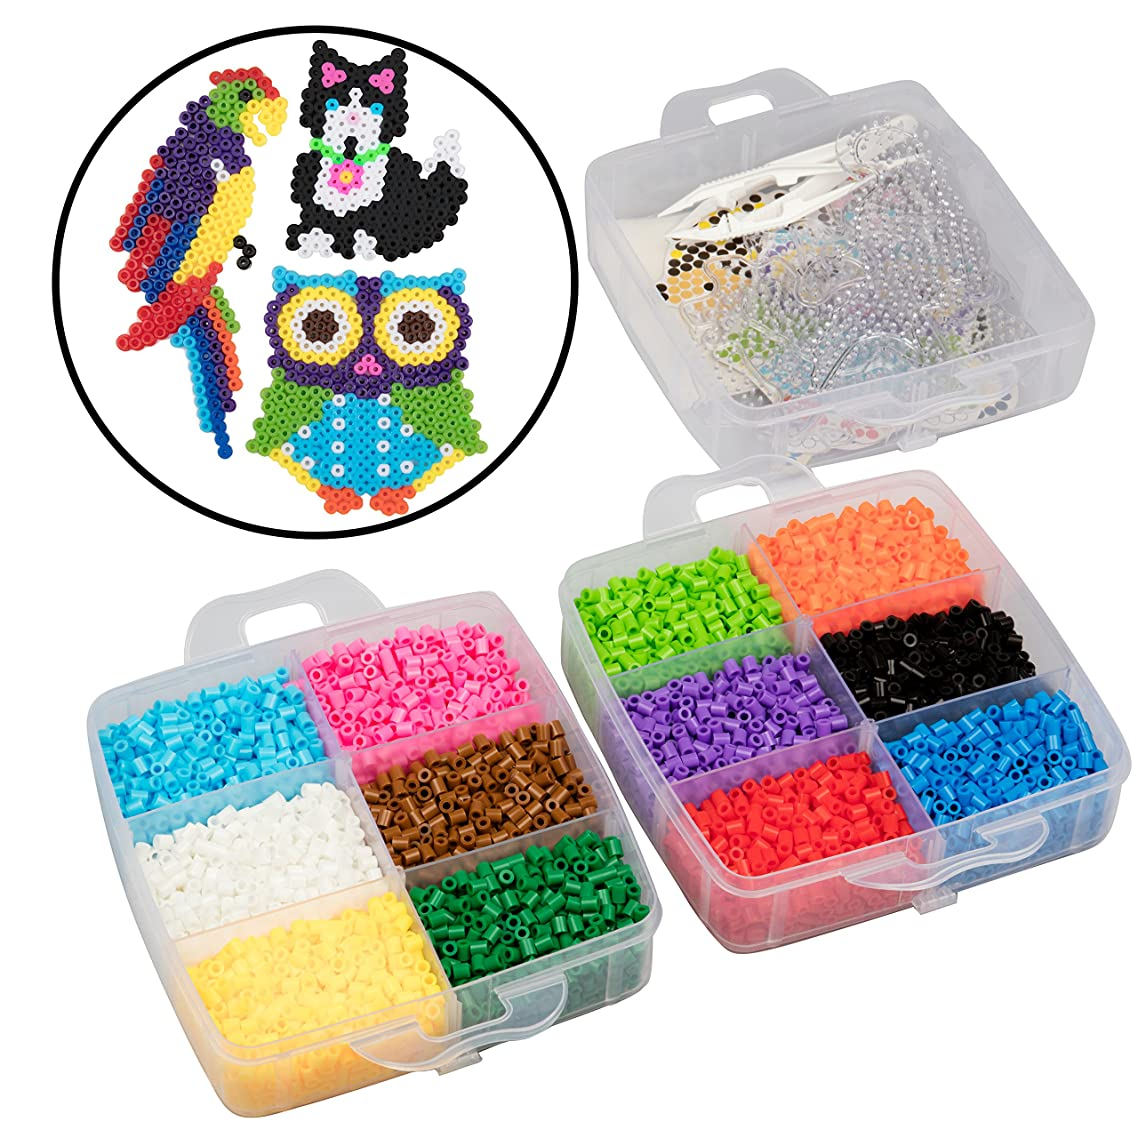 8,000pc Fuse Bead Super Kit w/Animal Pegboards and Templates - 12 Colors, 6 Peg Boards, Tweezers, Ironing Paper, Case - Works with Perler Beads